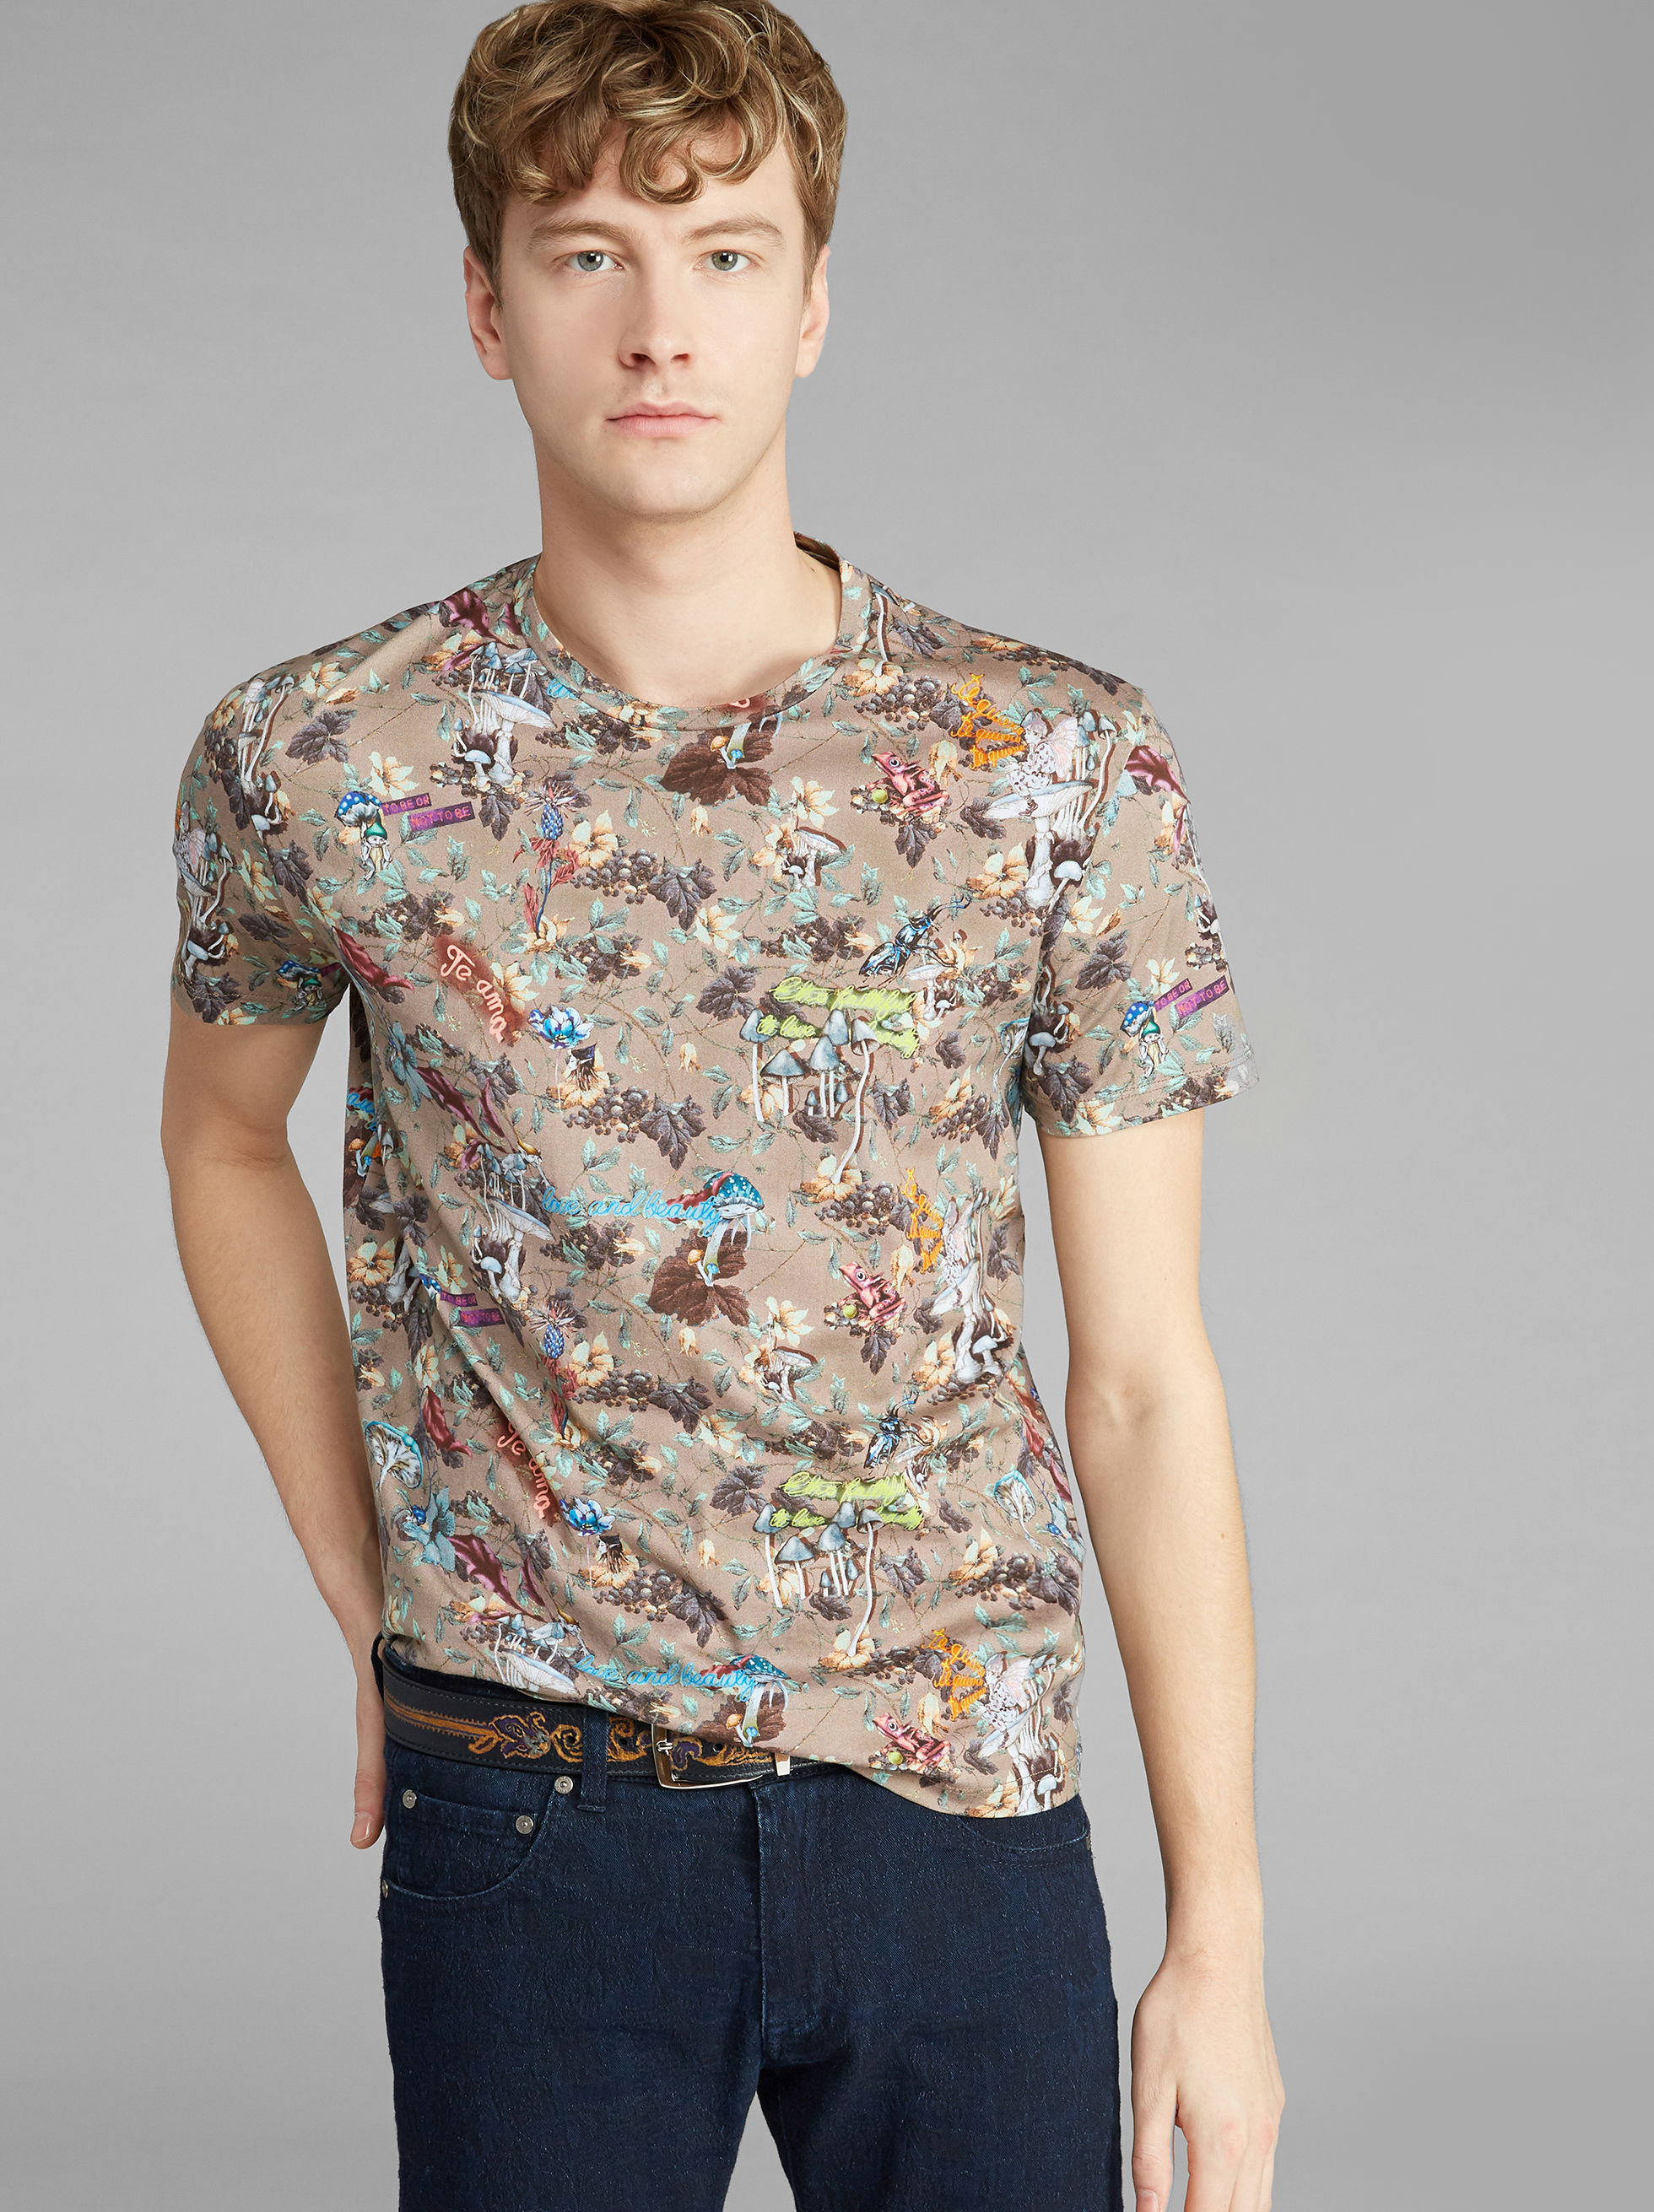 T-SHIRT STAMPA FLOREALE